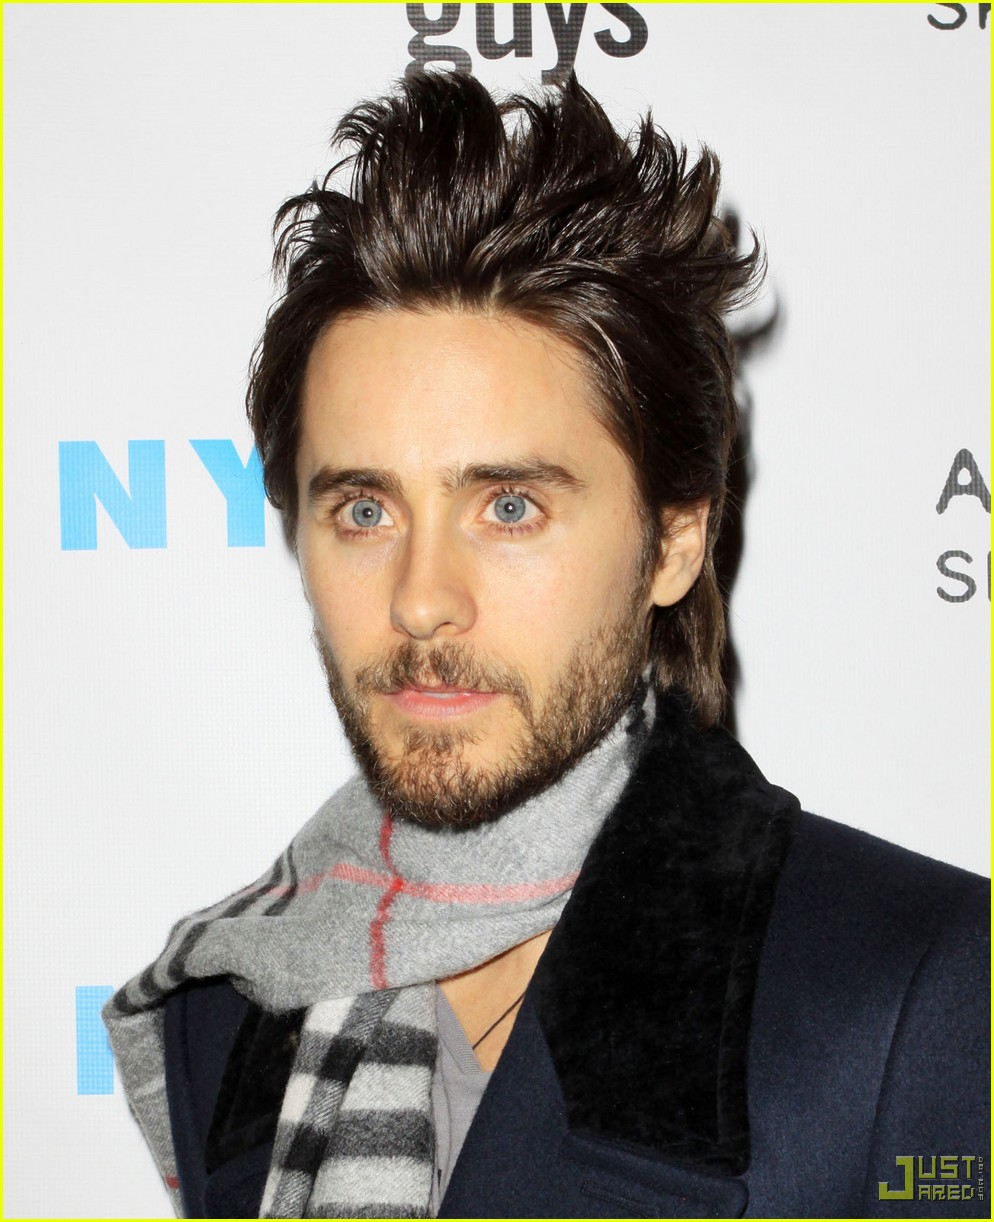 Jared Leto Hairstyle Men Hairstyles Men Hair Styles